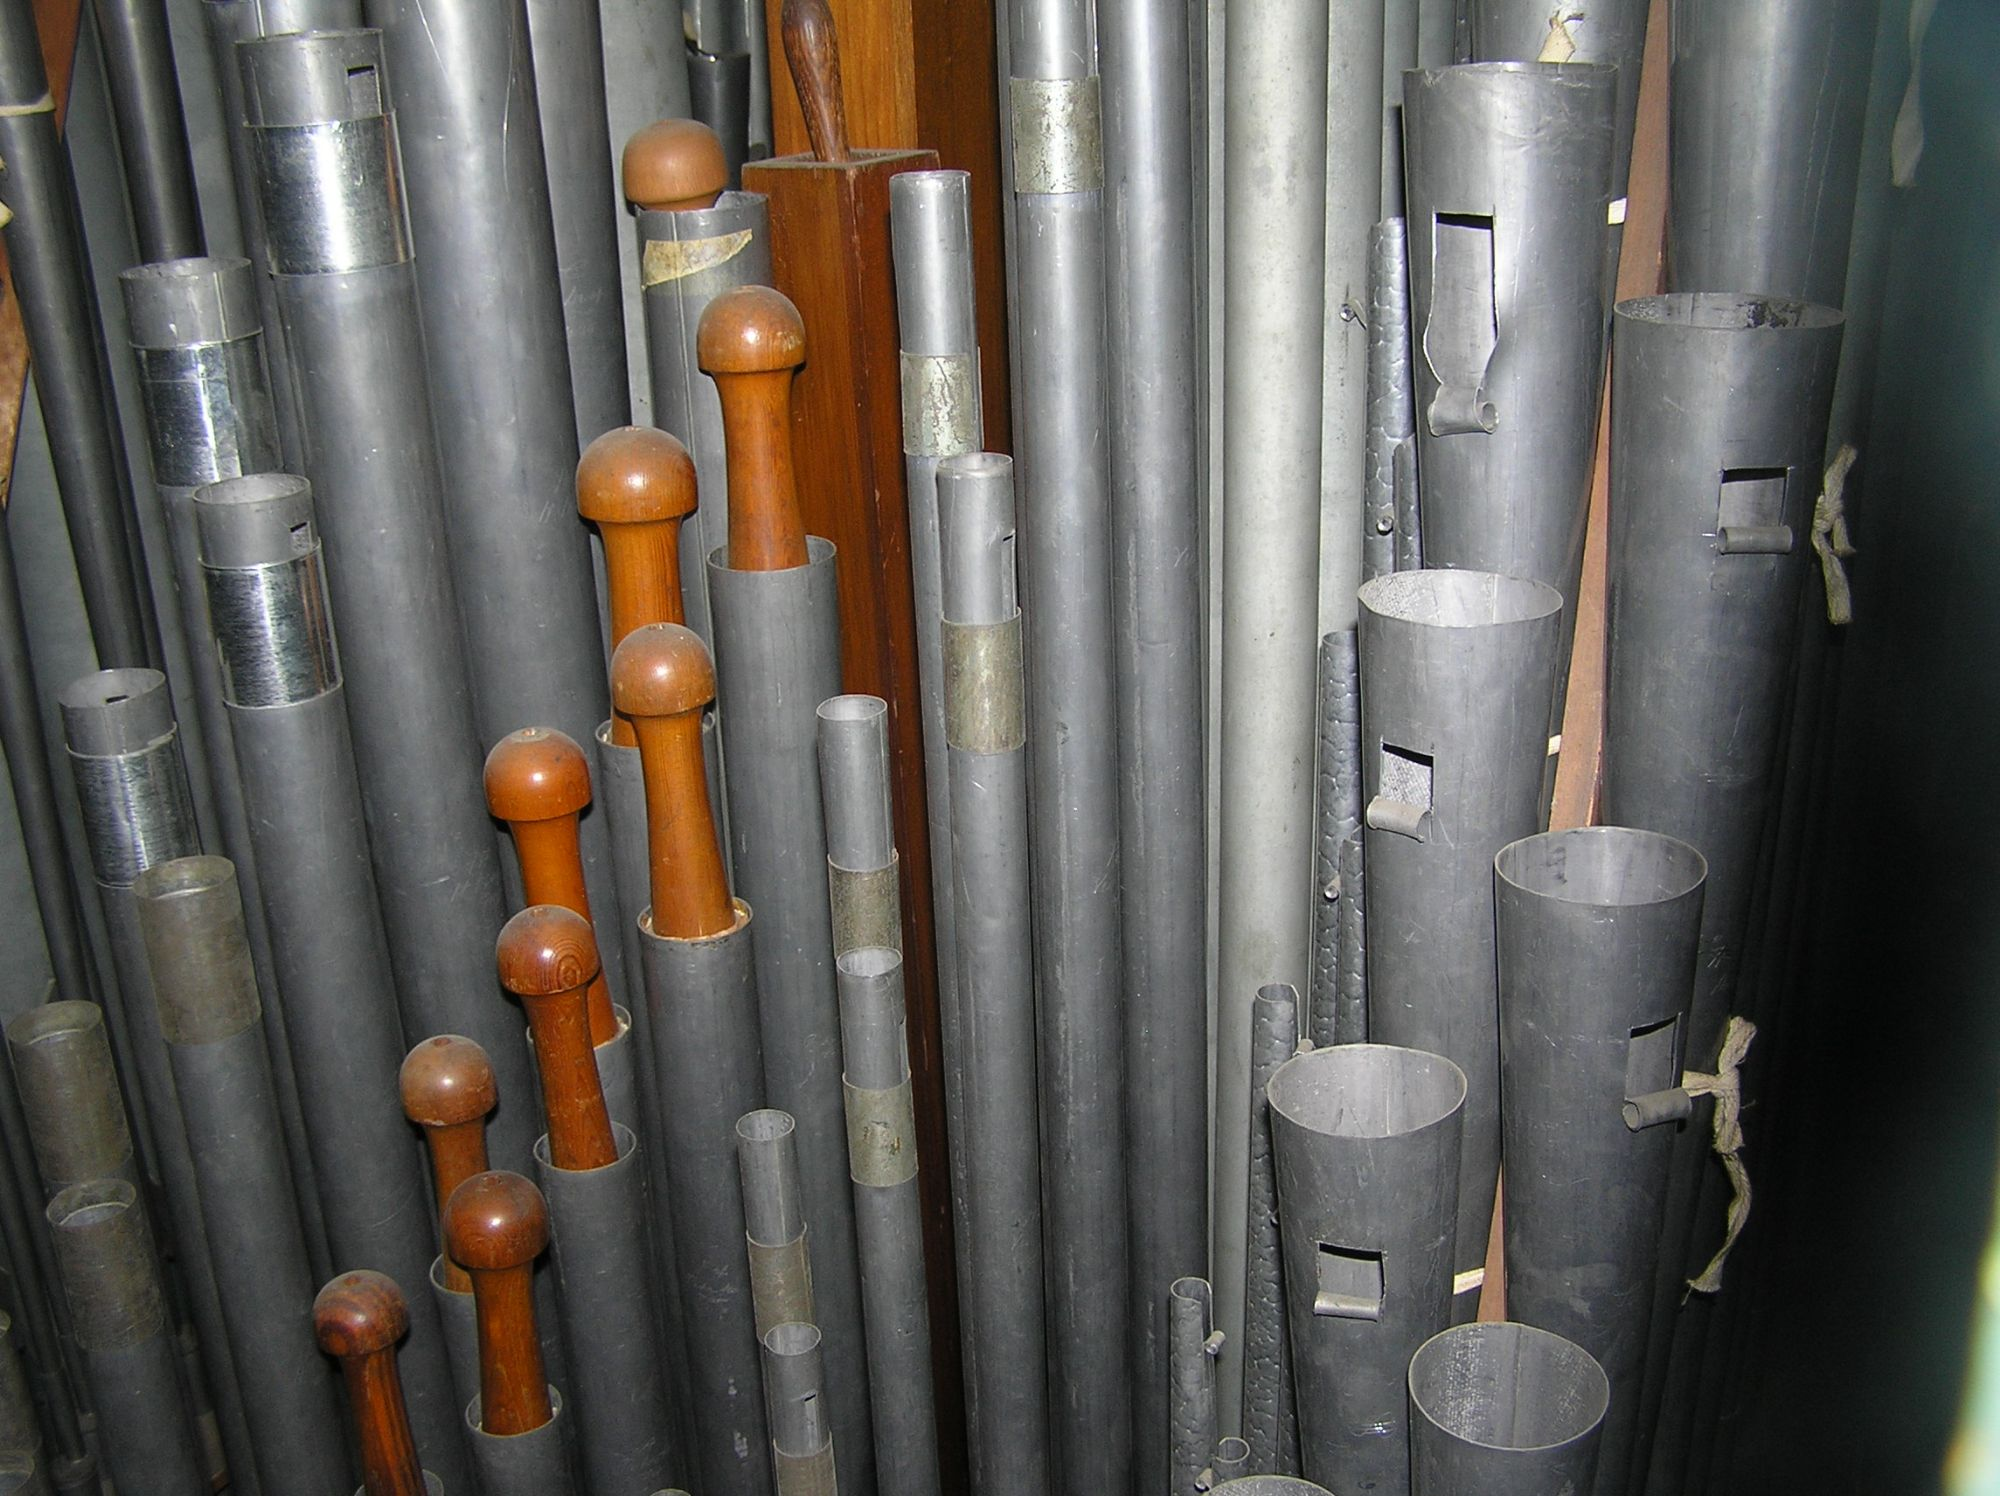 ORGAN PIPES 2